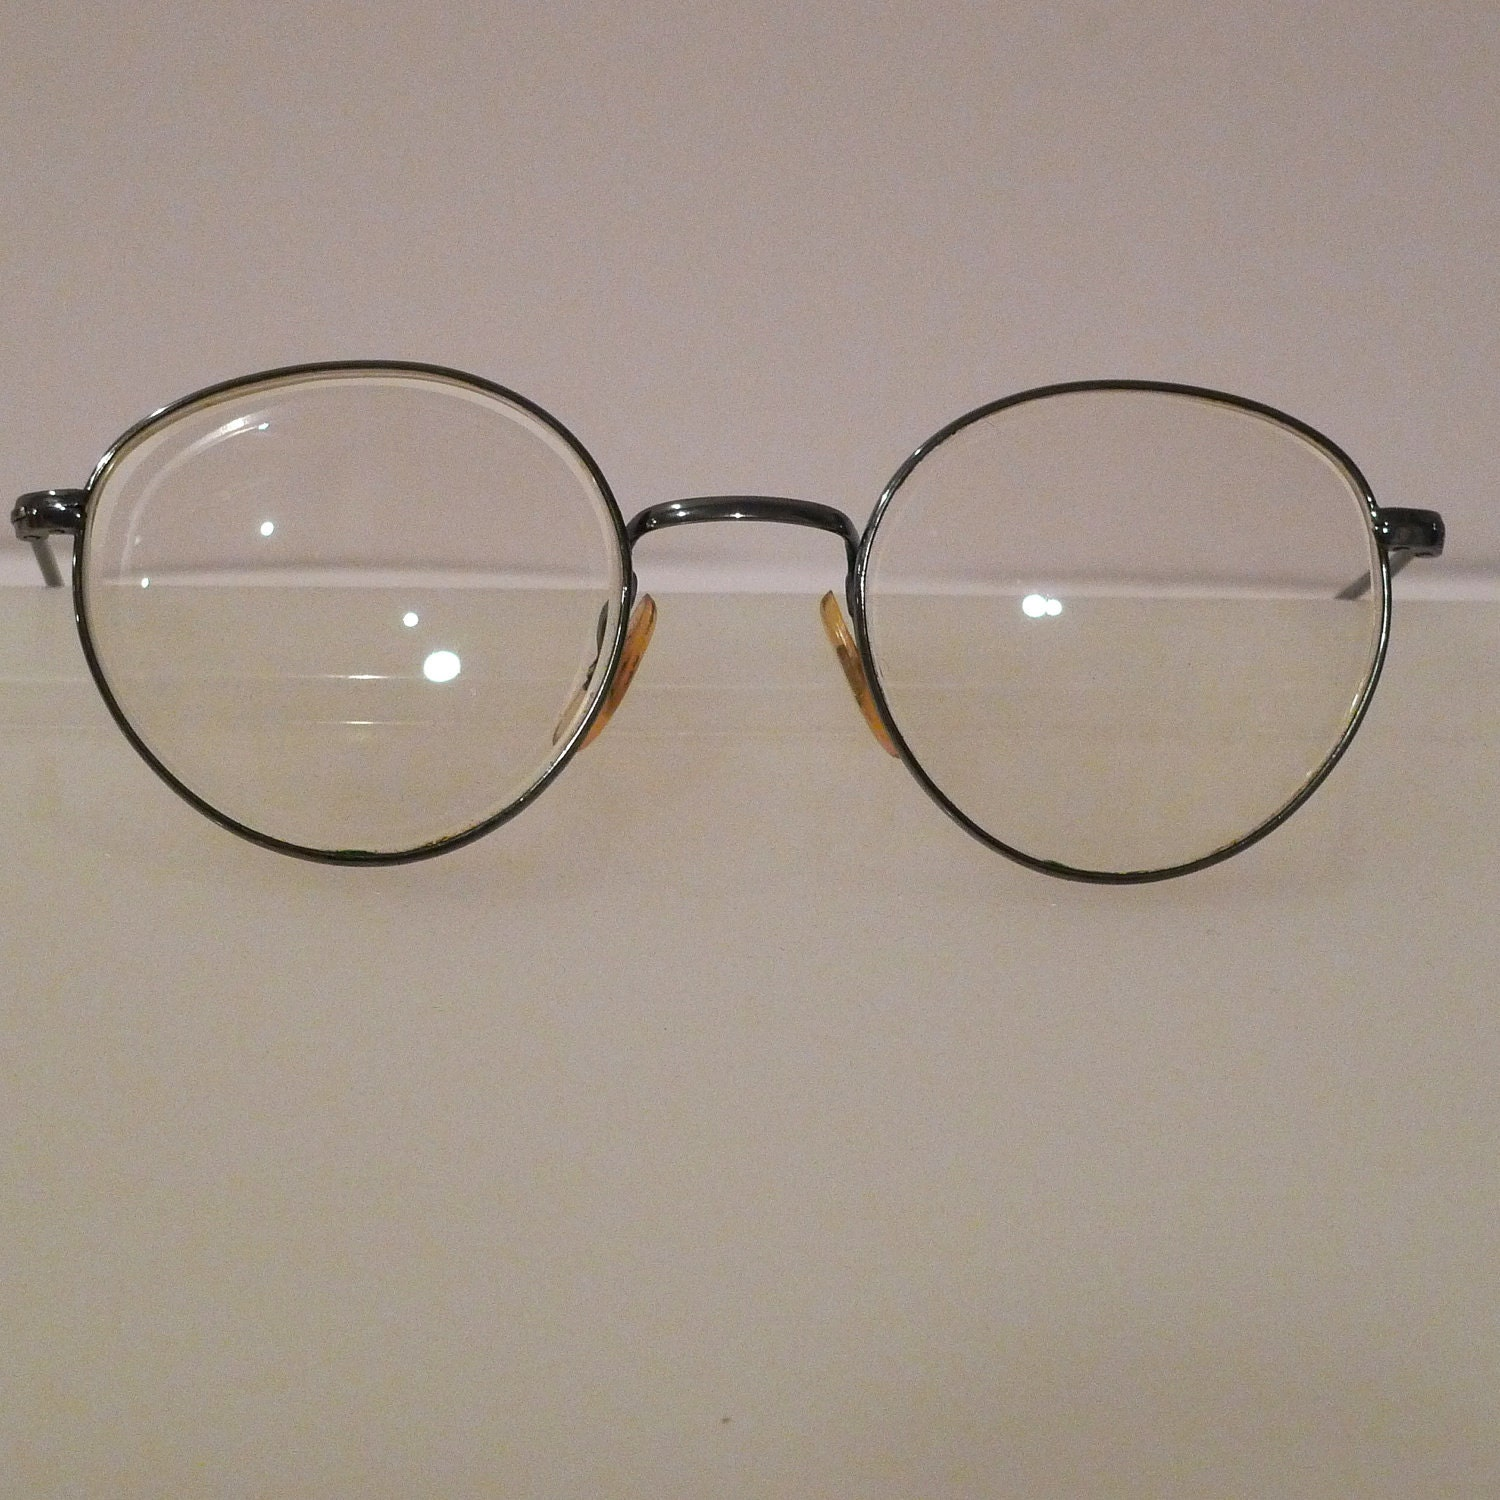 Eye Glasses Frames Silver wire frame spectacles retro vintage